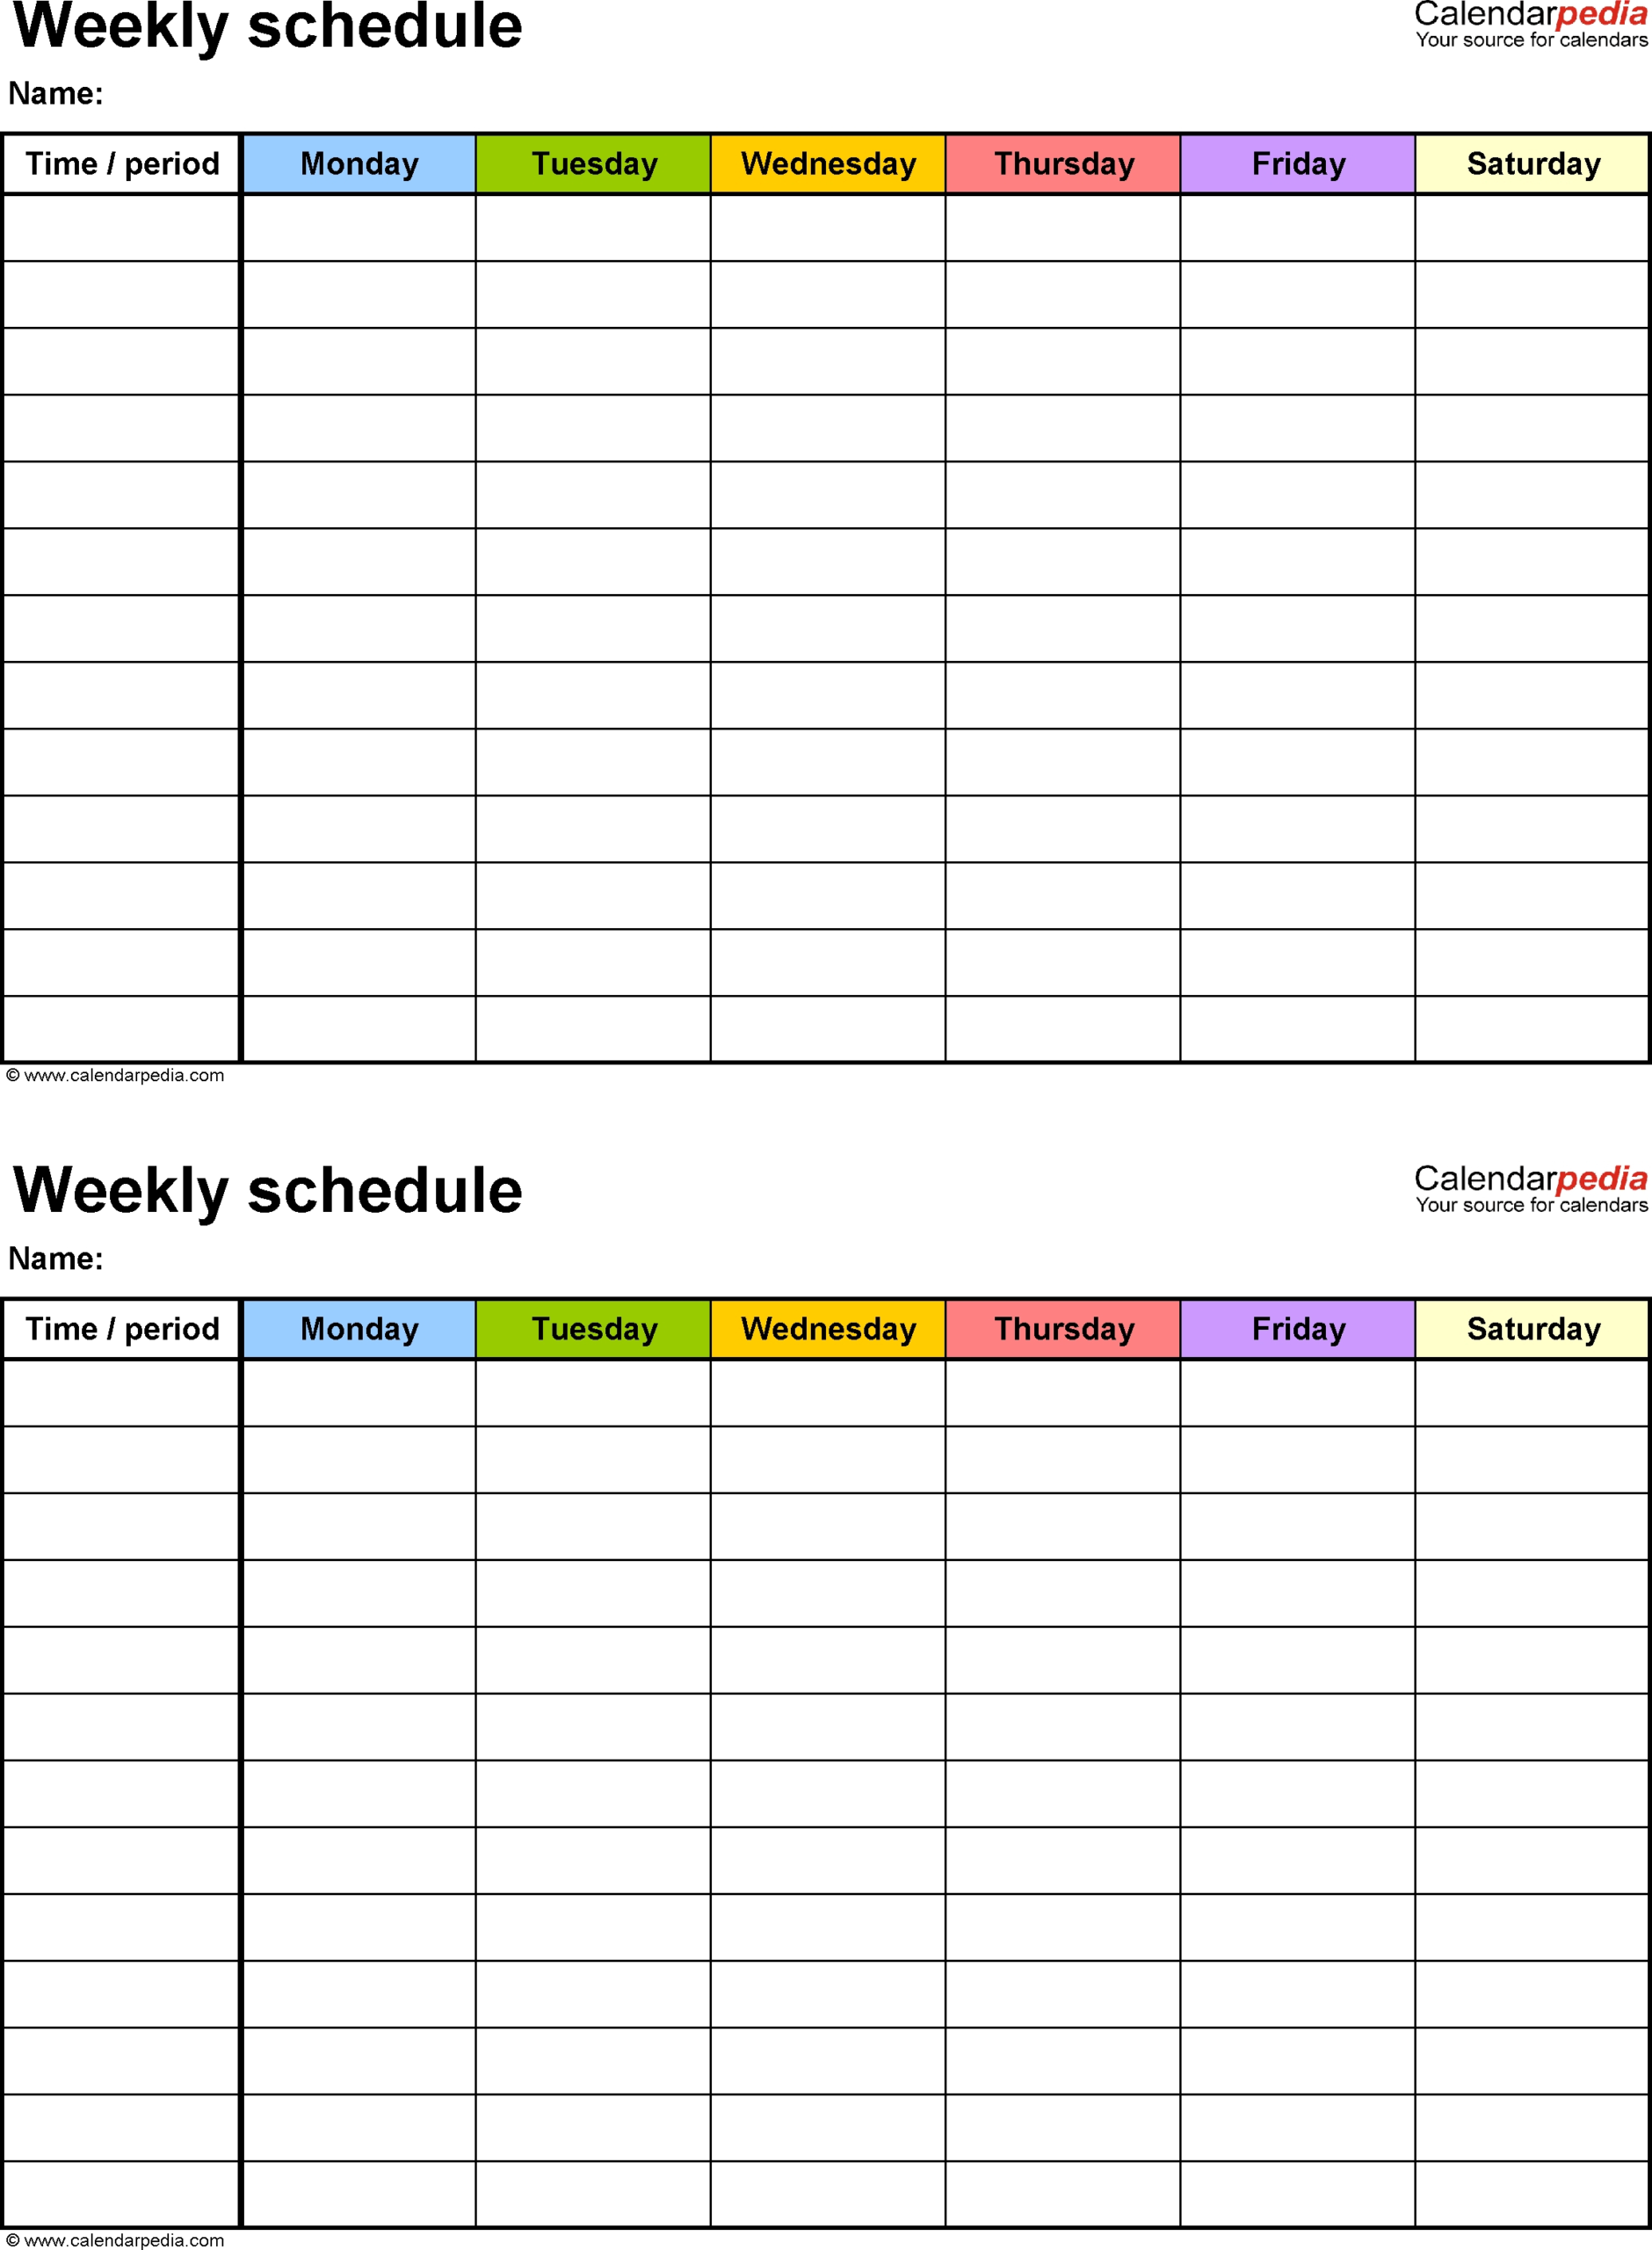 5 Day Weekly Timetable Blank 6 Periods  Calendar pertaining to 5 Day Week Calendar Template